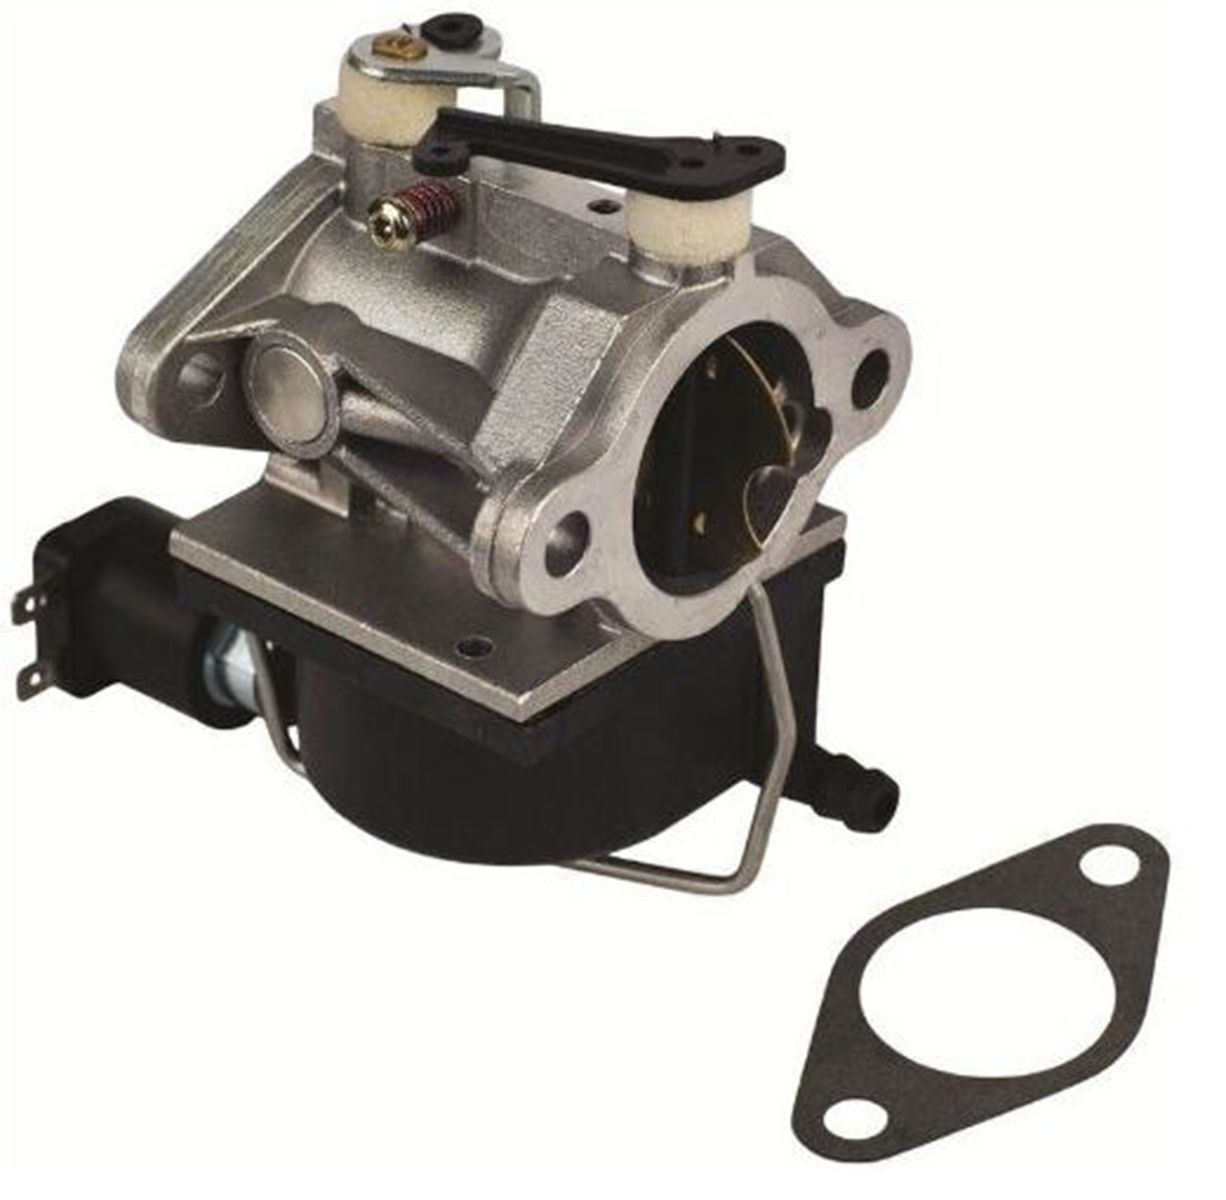 Replaces Huskee Model 13A8693G131 Lawn Tractor Carburetor